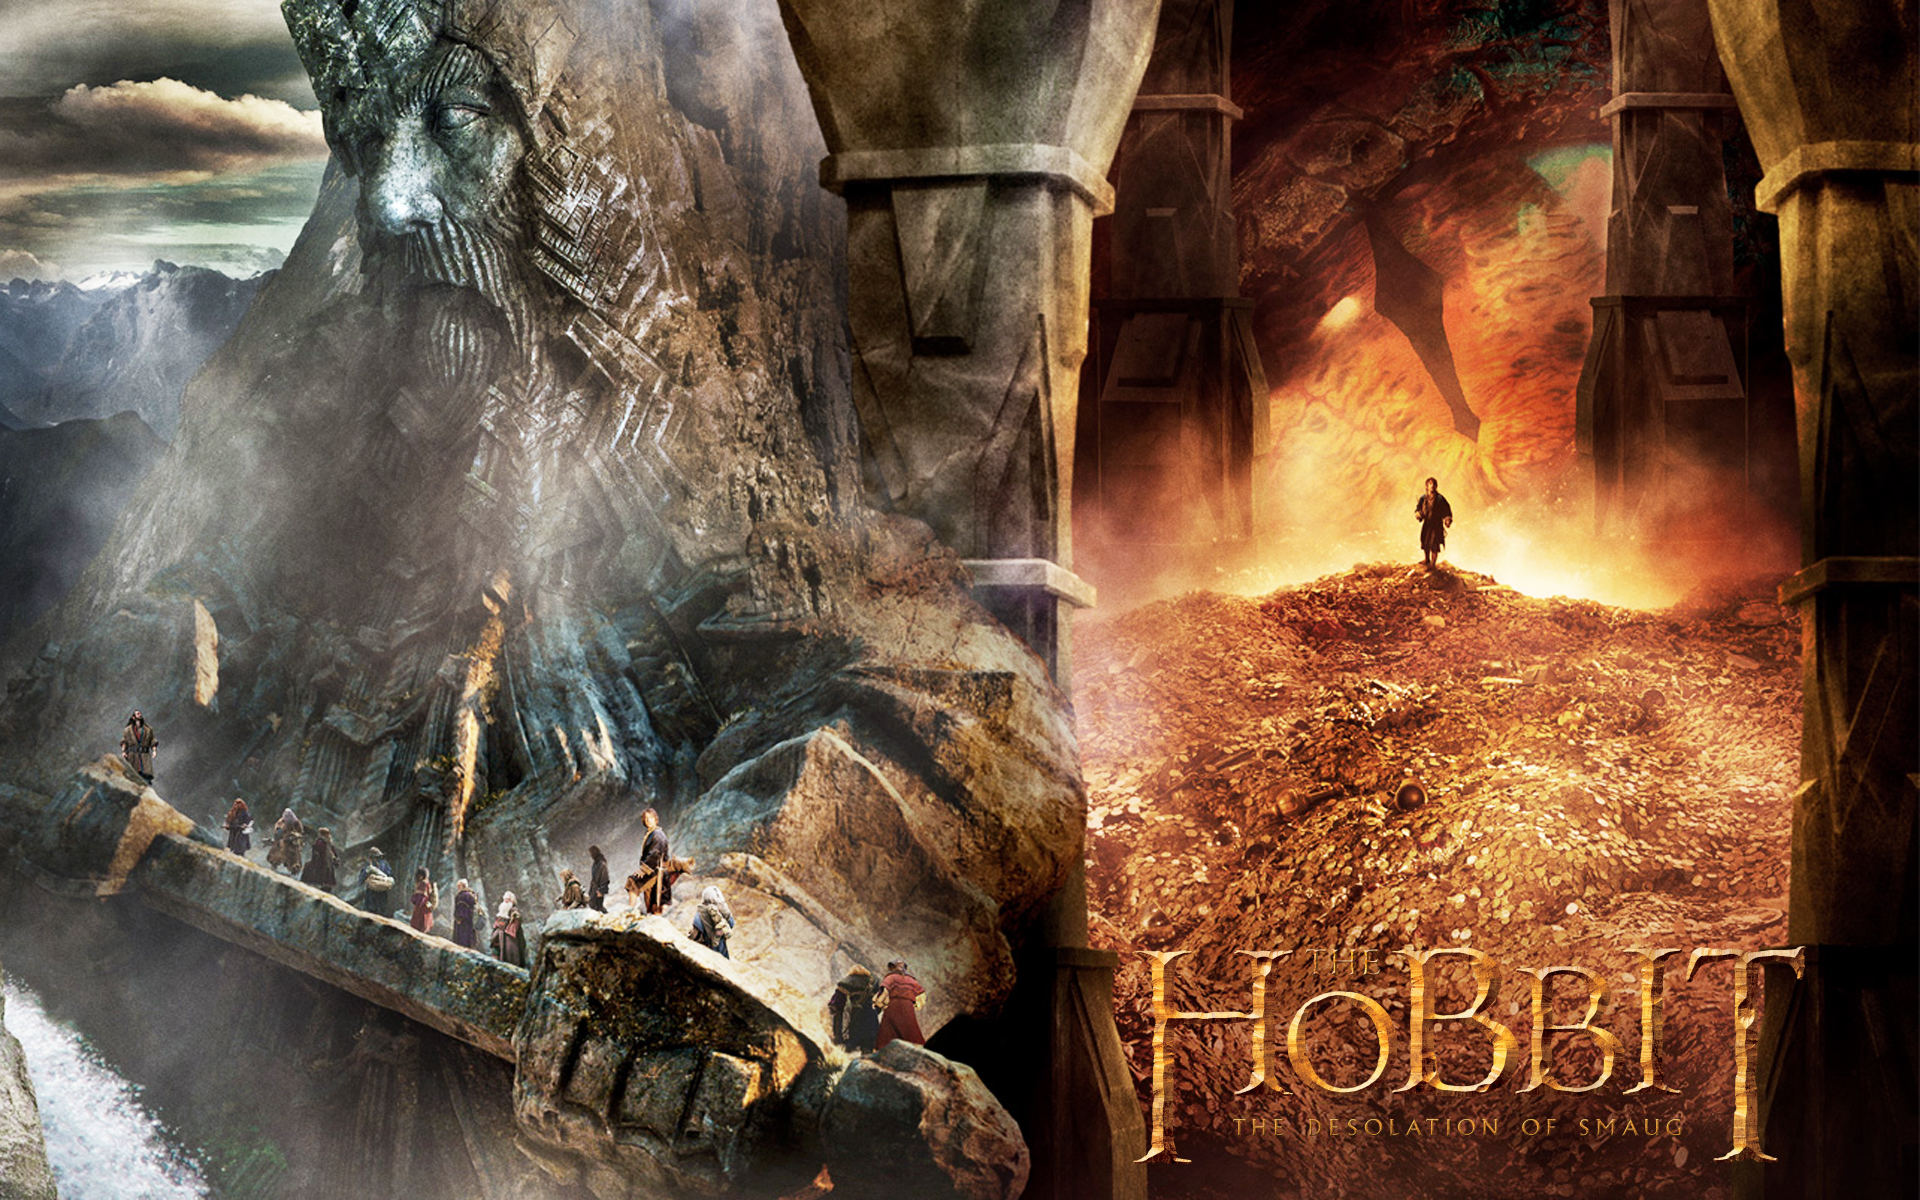 The Hobbit The Desolation of Smaug Wallpaper   The Hobbit Wallpaper 1920x1200